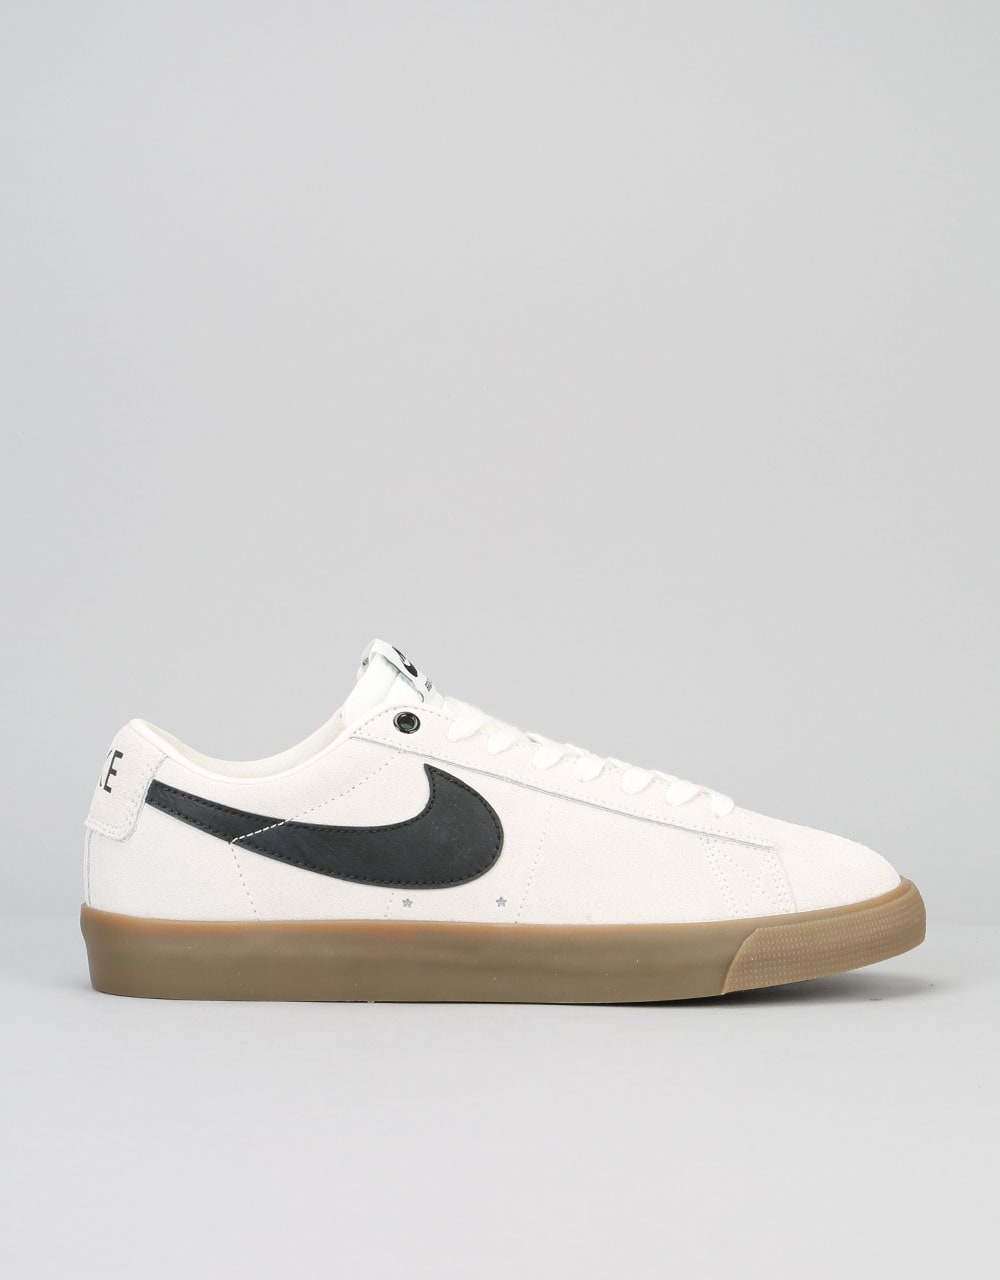 huge selection of 172a2 dd39d Nike SB Blazer Low GT Skate Shoes - IvoryBlack-Gum-Light Brown  Skate  Shoes  Mens Skateboarding Trainers  Footwear  Route One